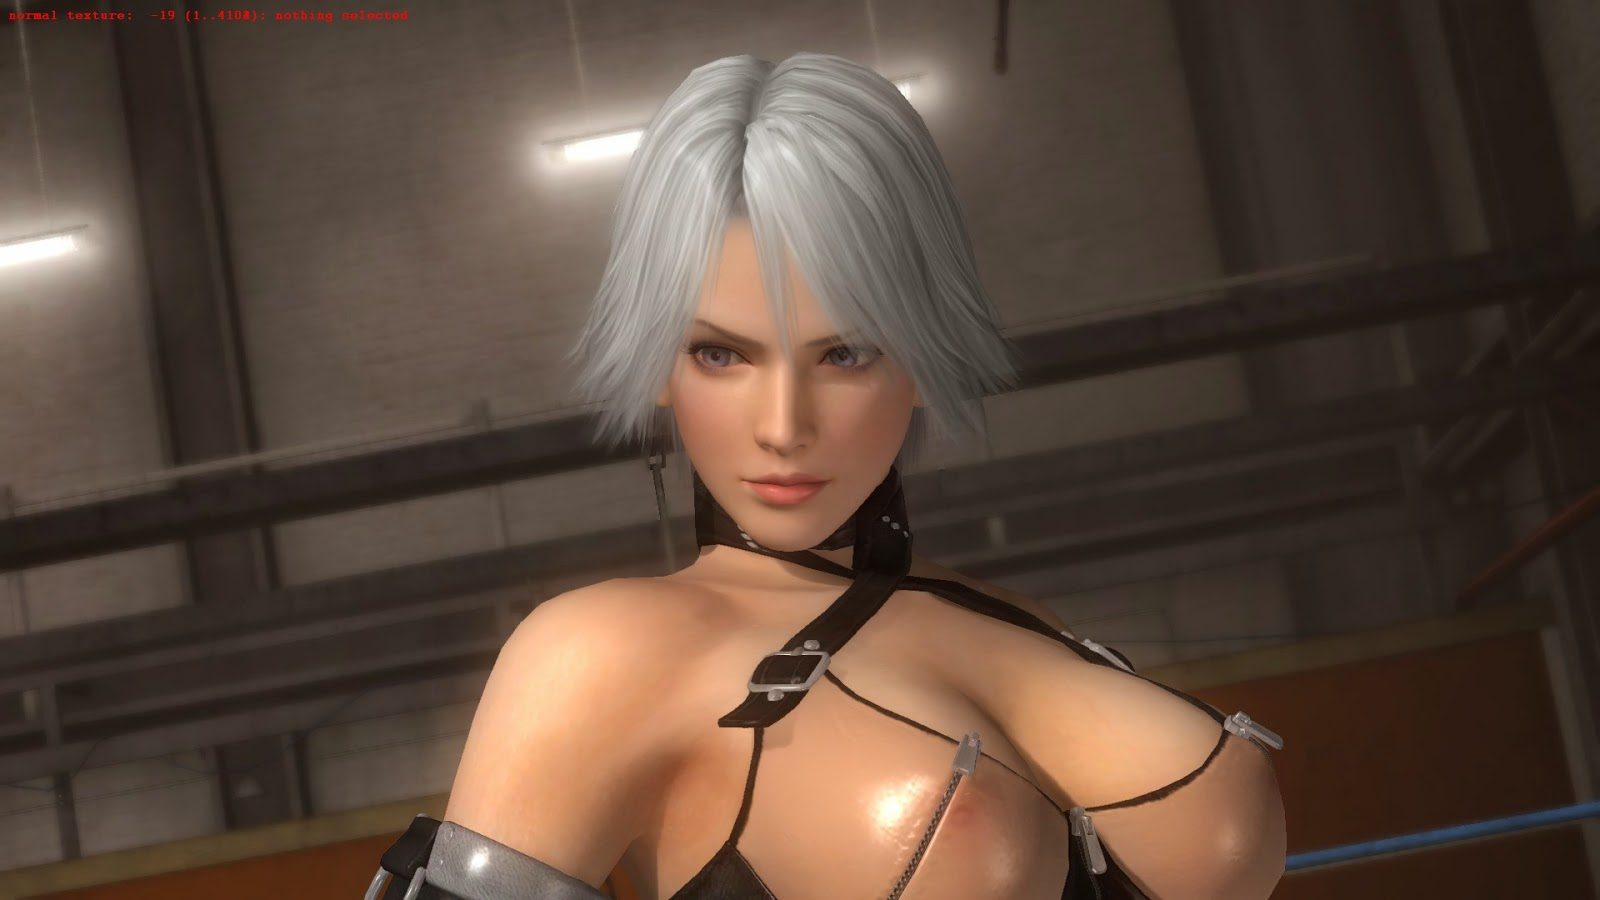 doa5-nude-mod---christie-sexy,DOA5 Nude Mod - Christie Sexy,Game, Game Offline, Best Game, GamePlay, game nice, game good, mods game, game mods, mods, game hardcode, cheat game, game trick, game sex, games, game bet, download, downgame, game hot - Mod Dead Or Alive 5 Last Round Free